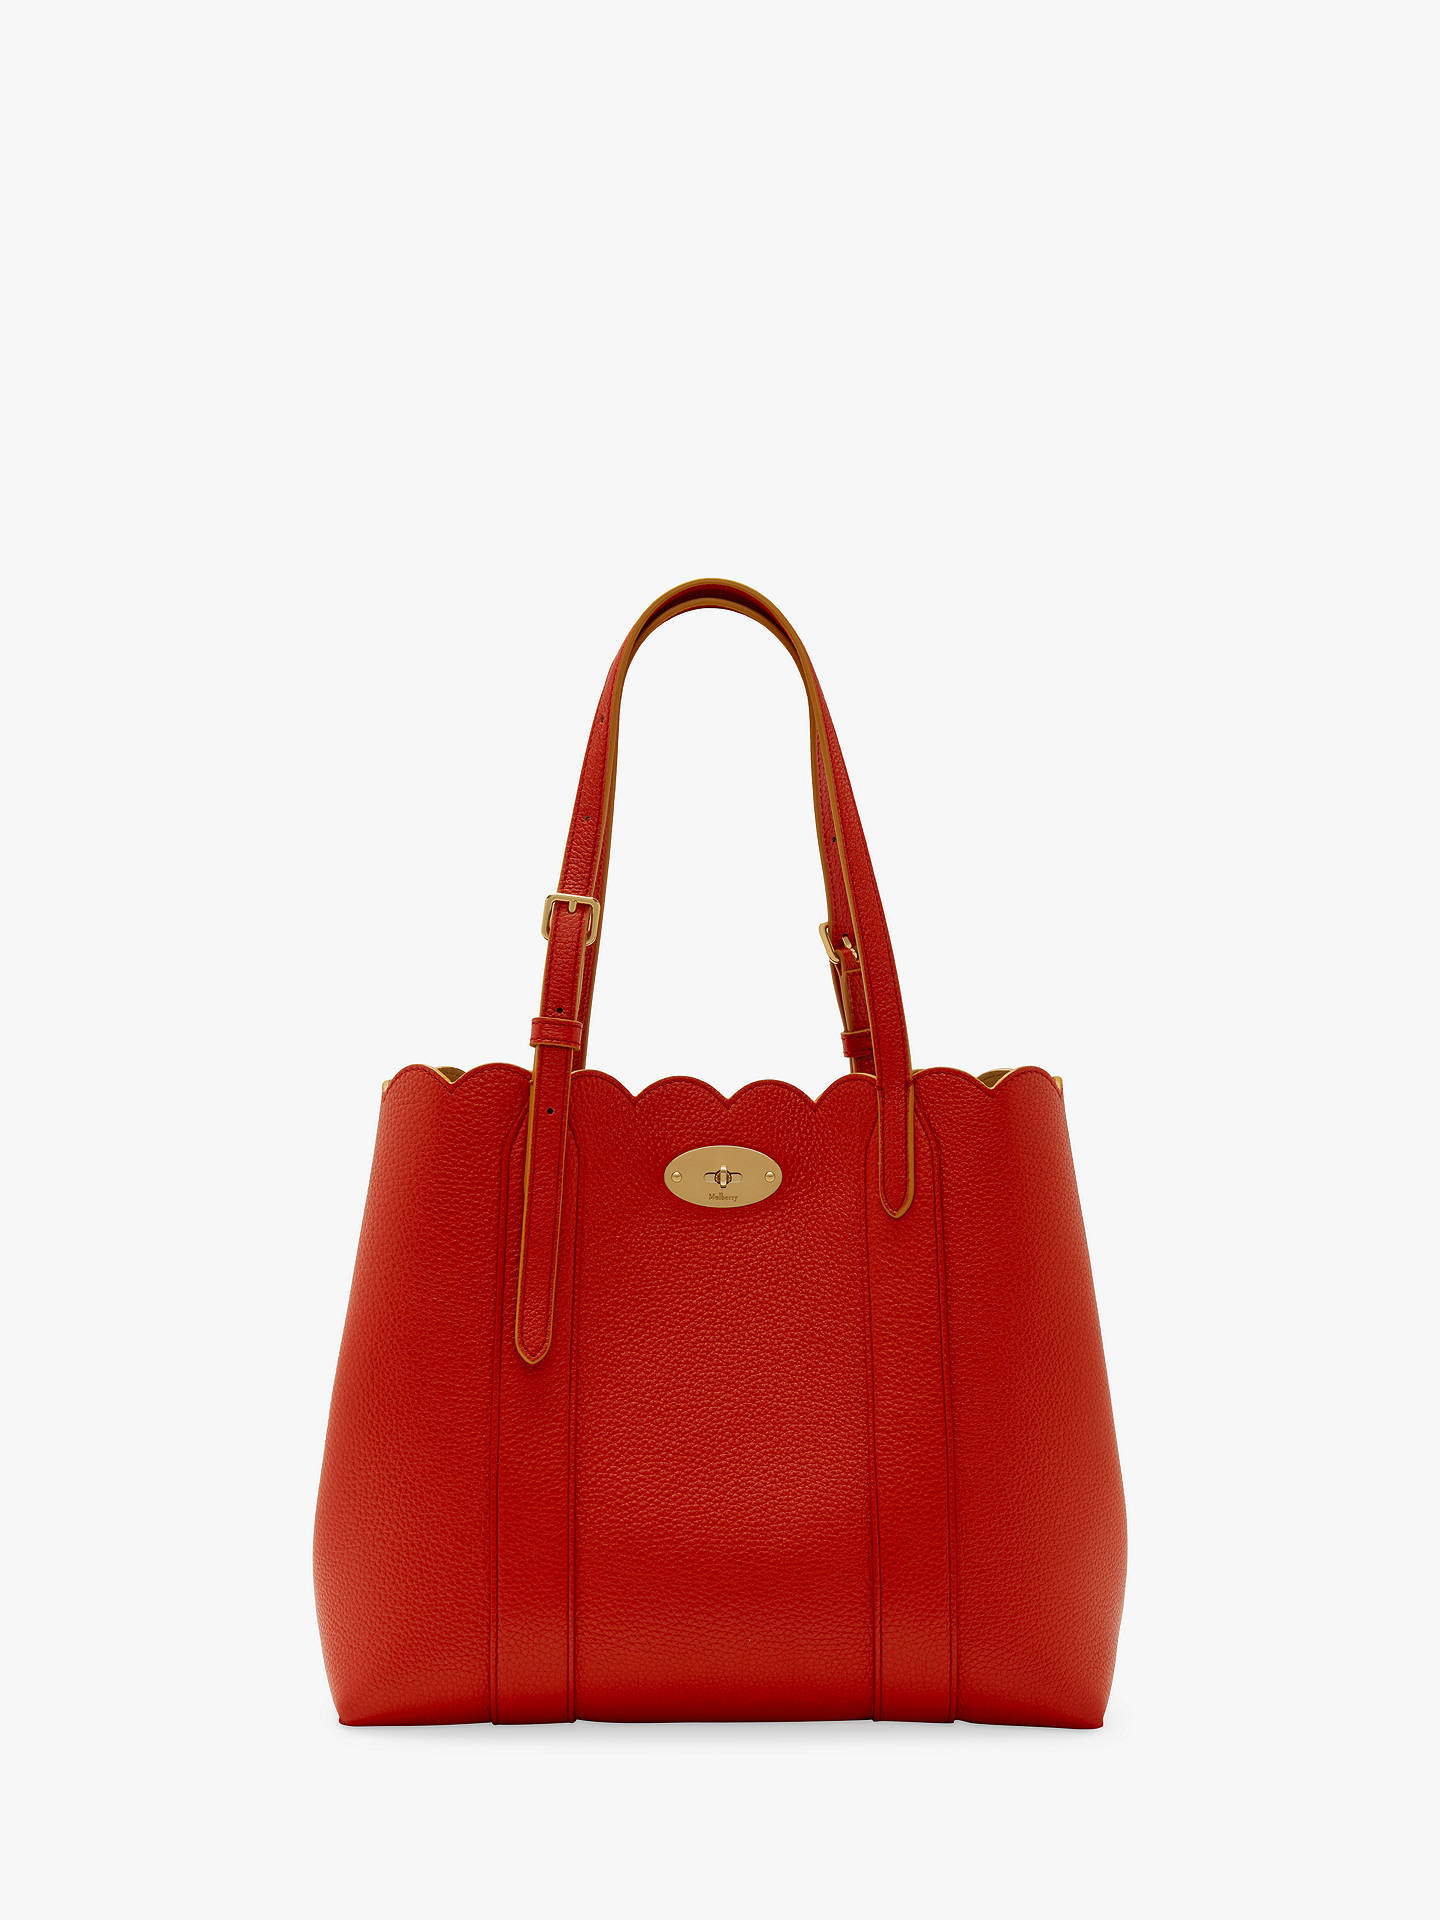 dab70710e83 BuyMulberry Scalloped Bayswater Small Classic Grain Leather Tote Bag,  Hibiscus Red Online at johnlewis.